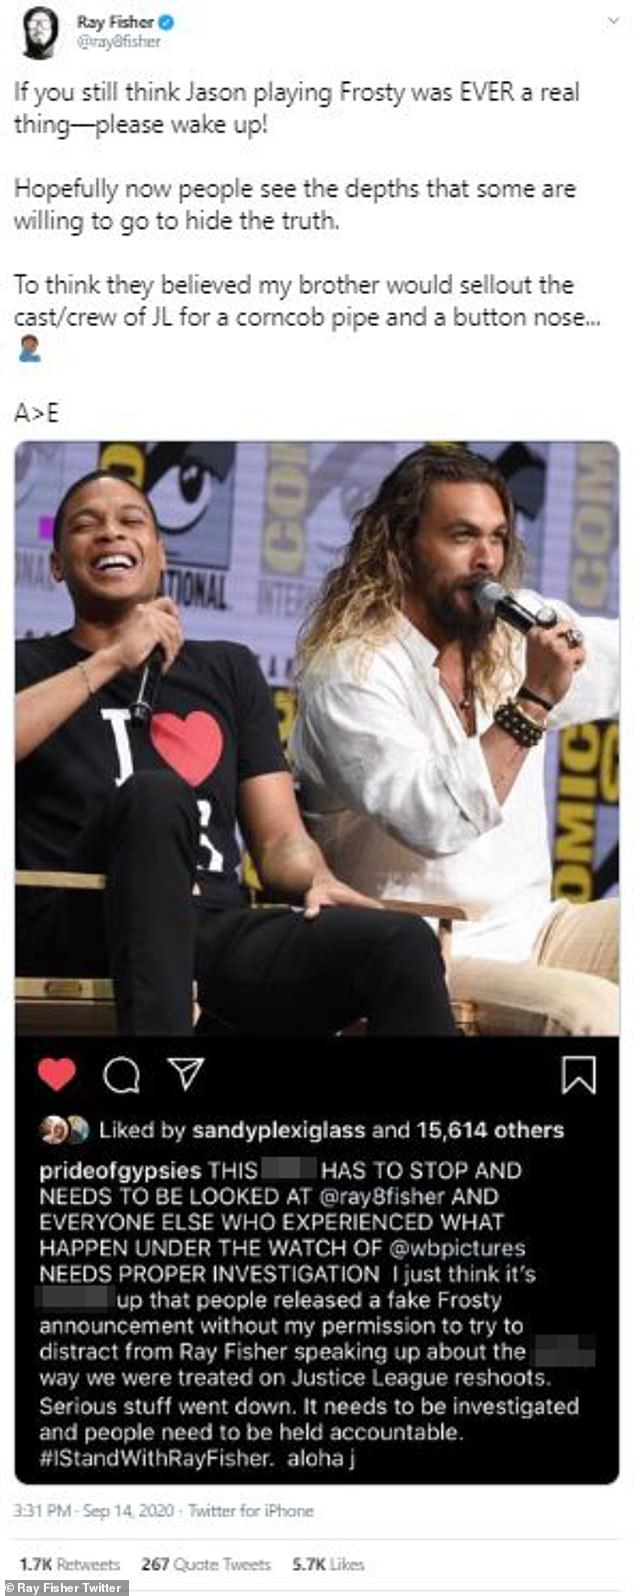 Fake news: Fisher also reiterated that Momoa news expressing Snowman's Frosty was always fake, despite being widely reported in the press, in a tweet Monday